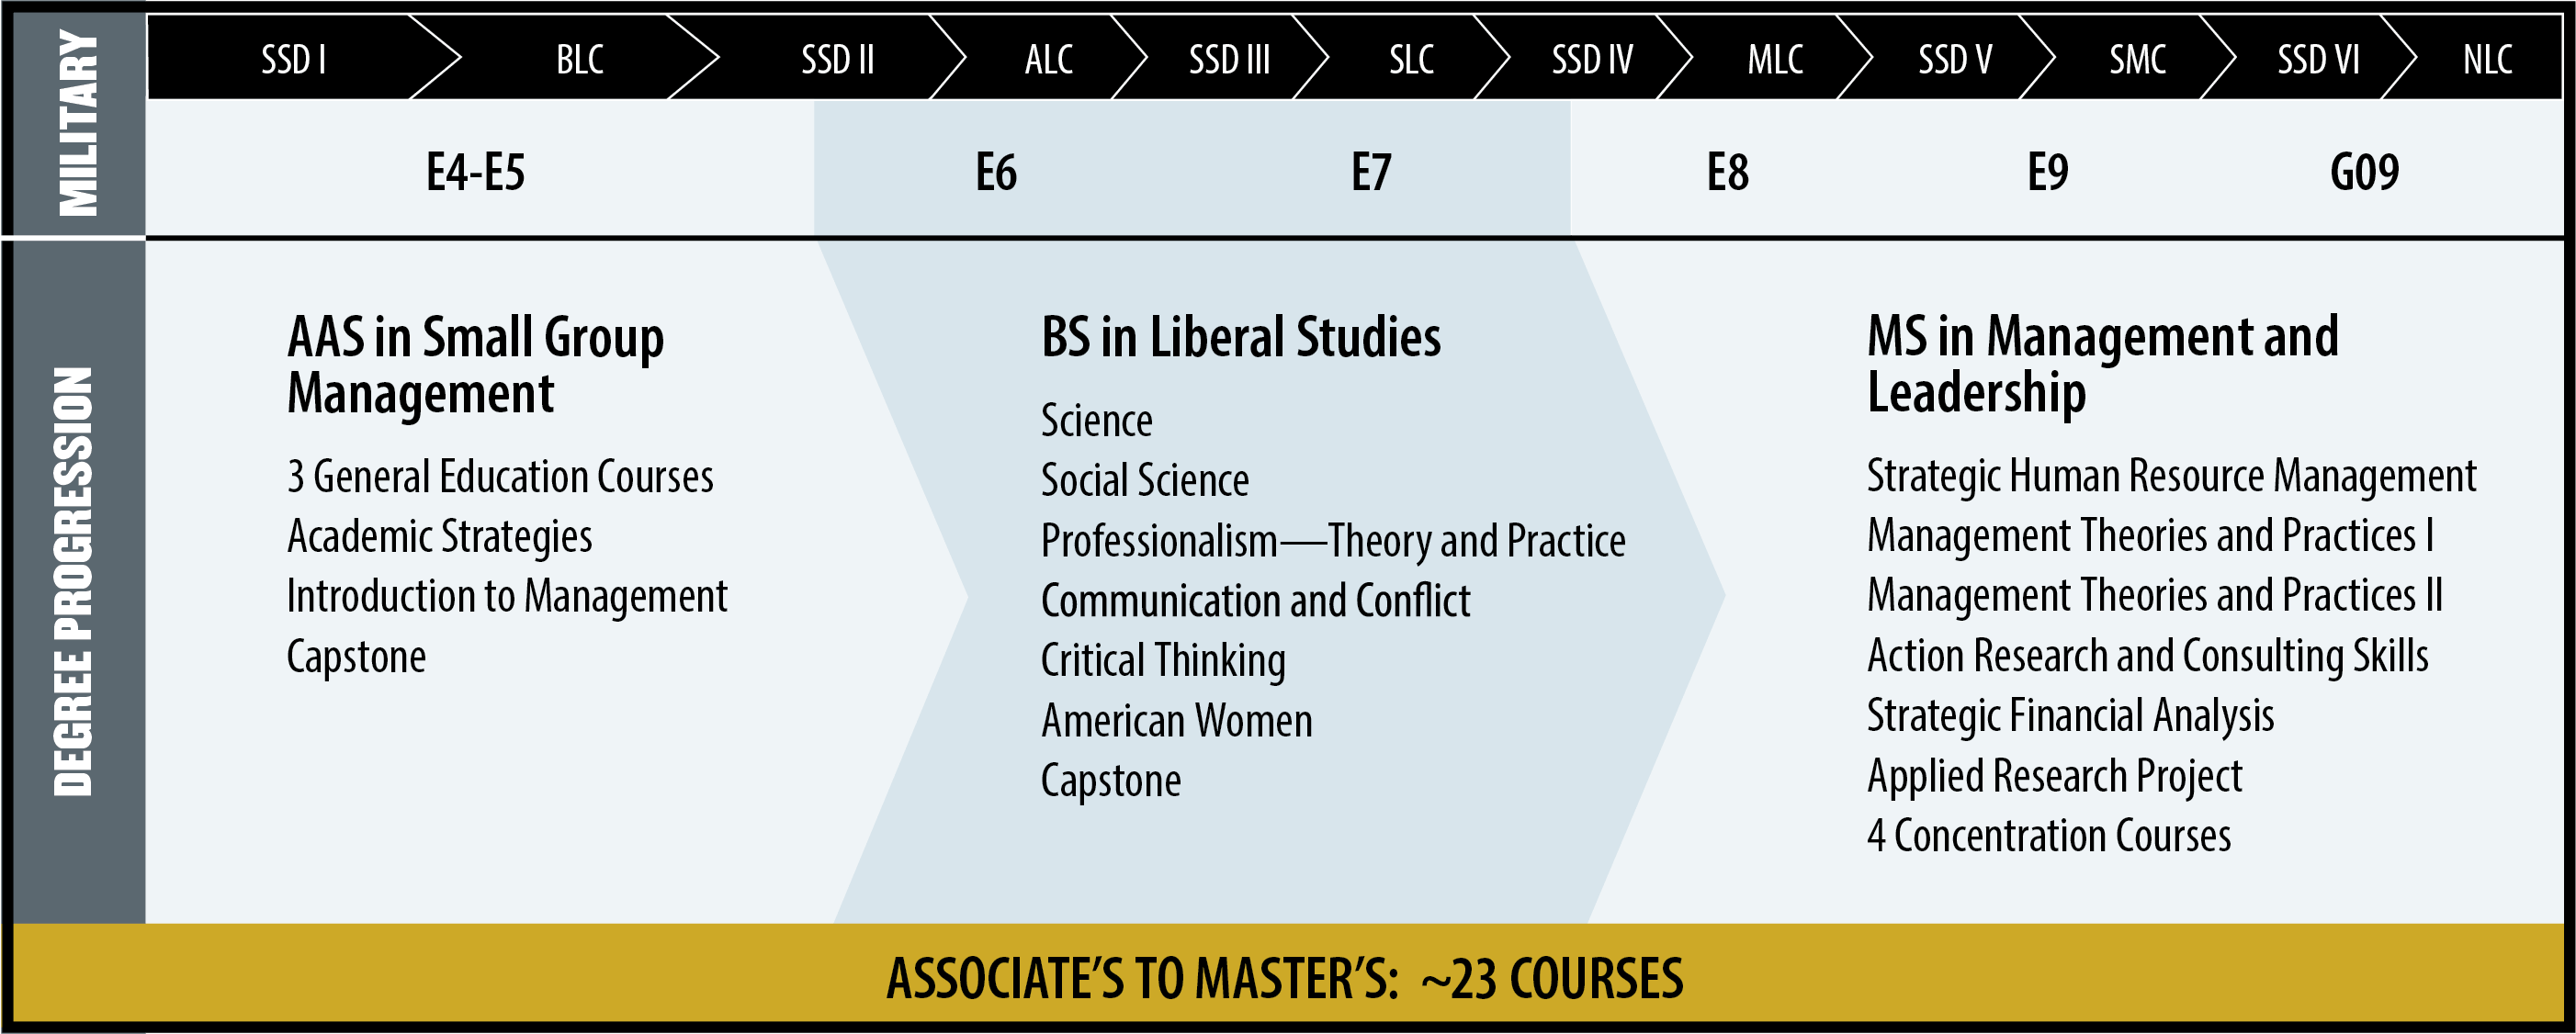 The Associate's to Master's infographic shows a pathway for a soldier to progress from an associate's degree to a bachelor's degree to a master's degree at Purdue University Global in approximately 23 courses.  